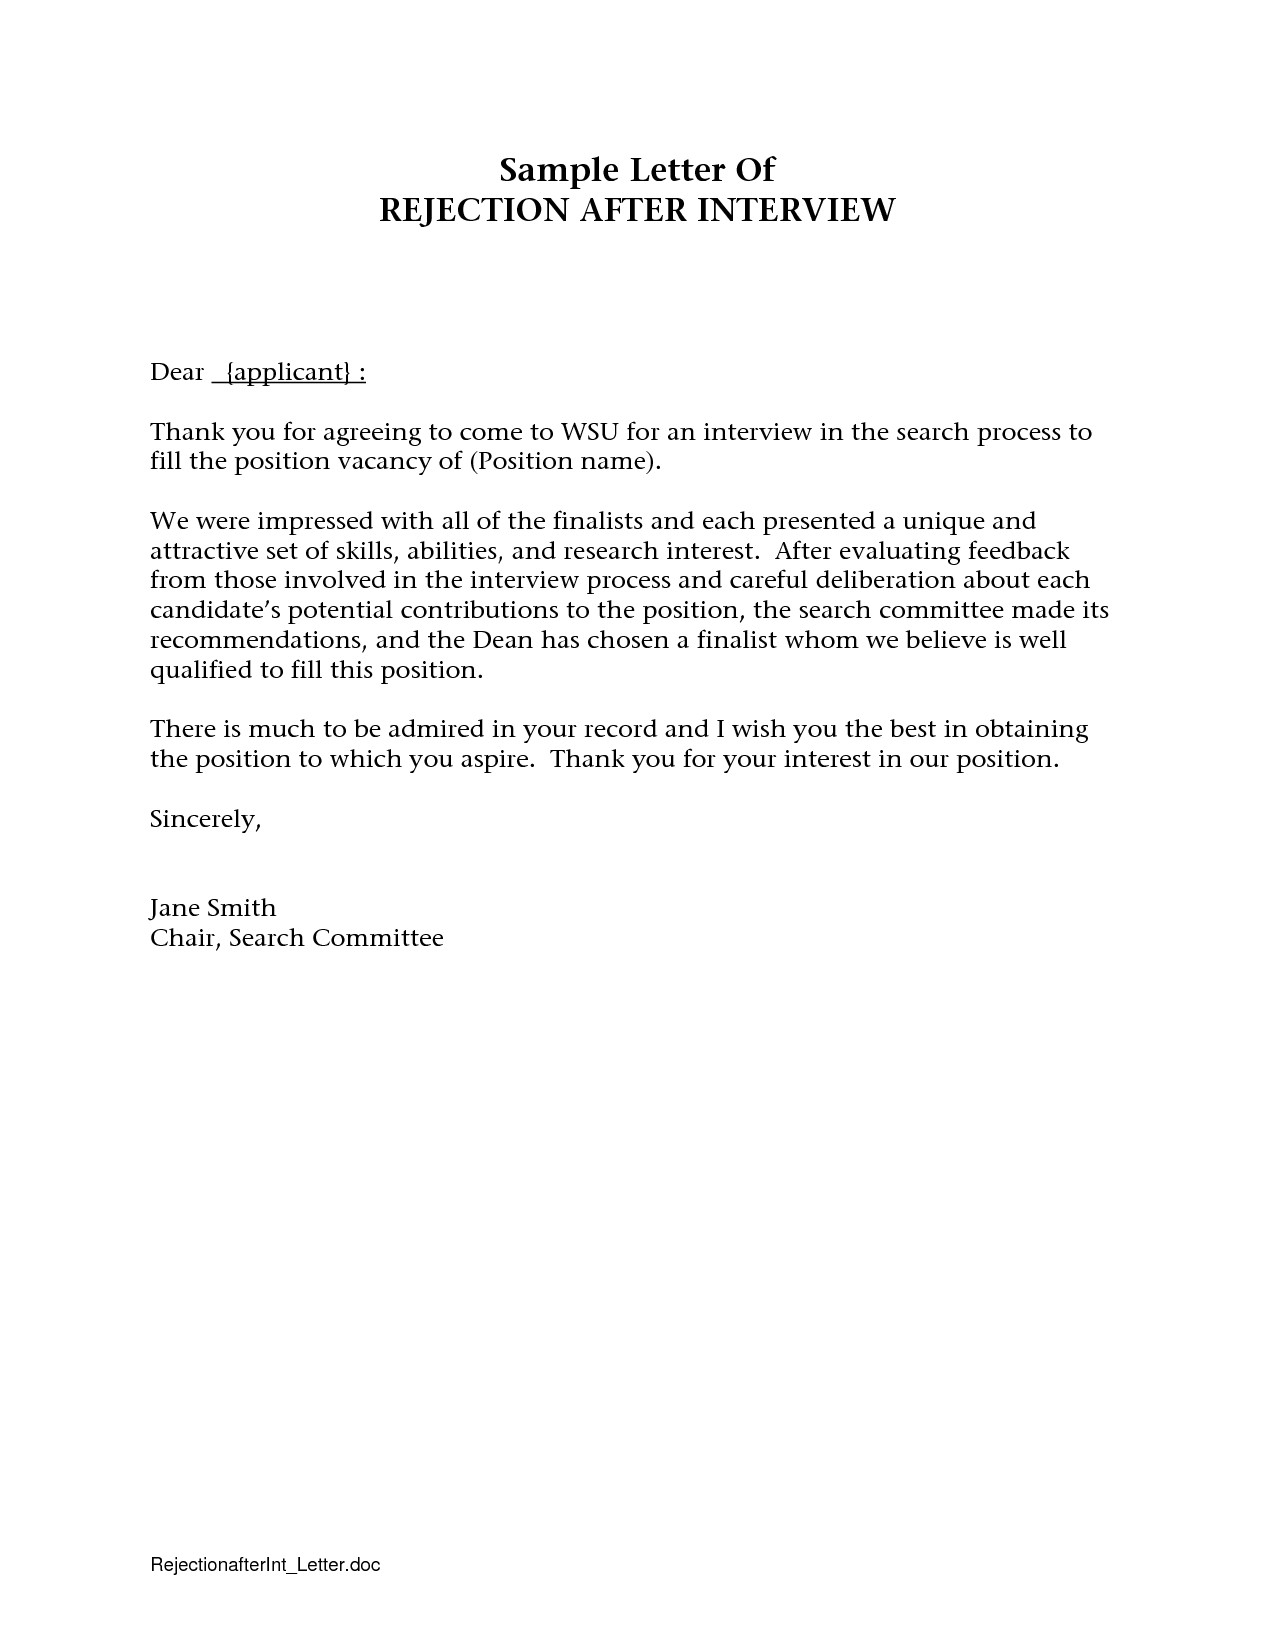 Rejection Letter Template after Interview - Free Cover Letter Templates Thank You Letter after Interview Email